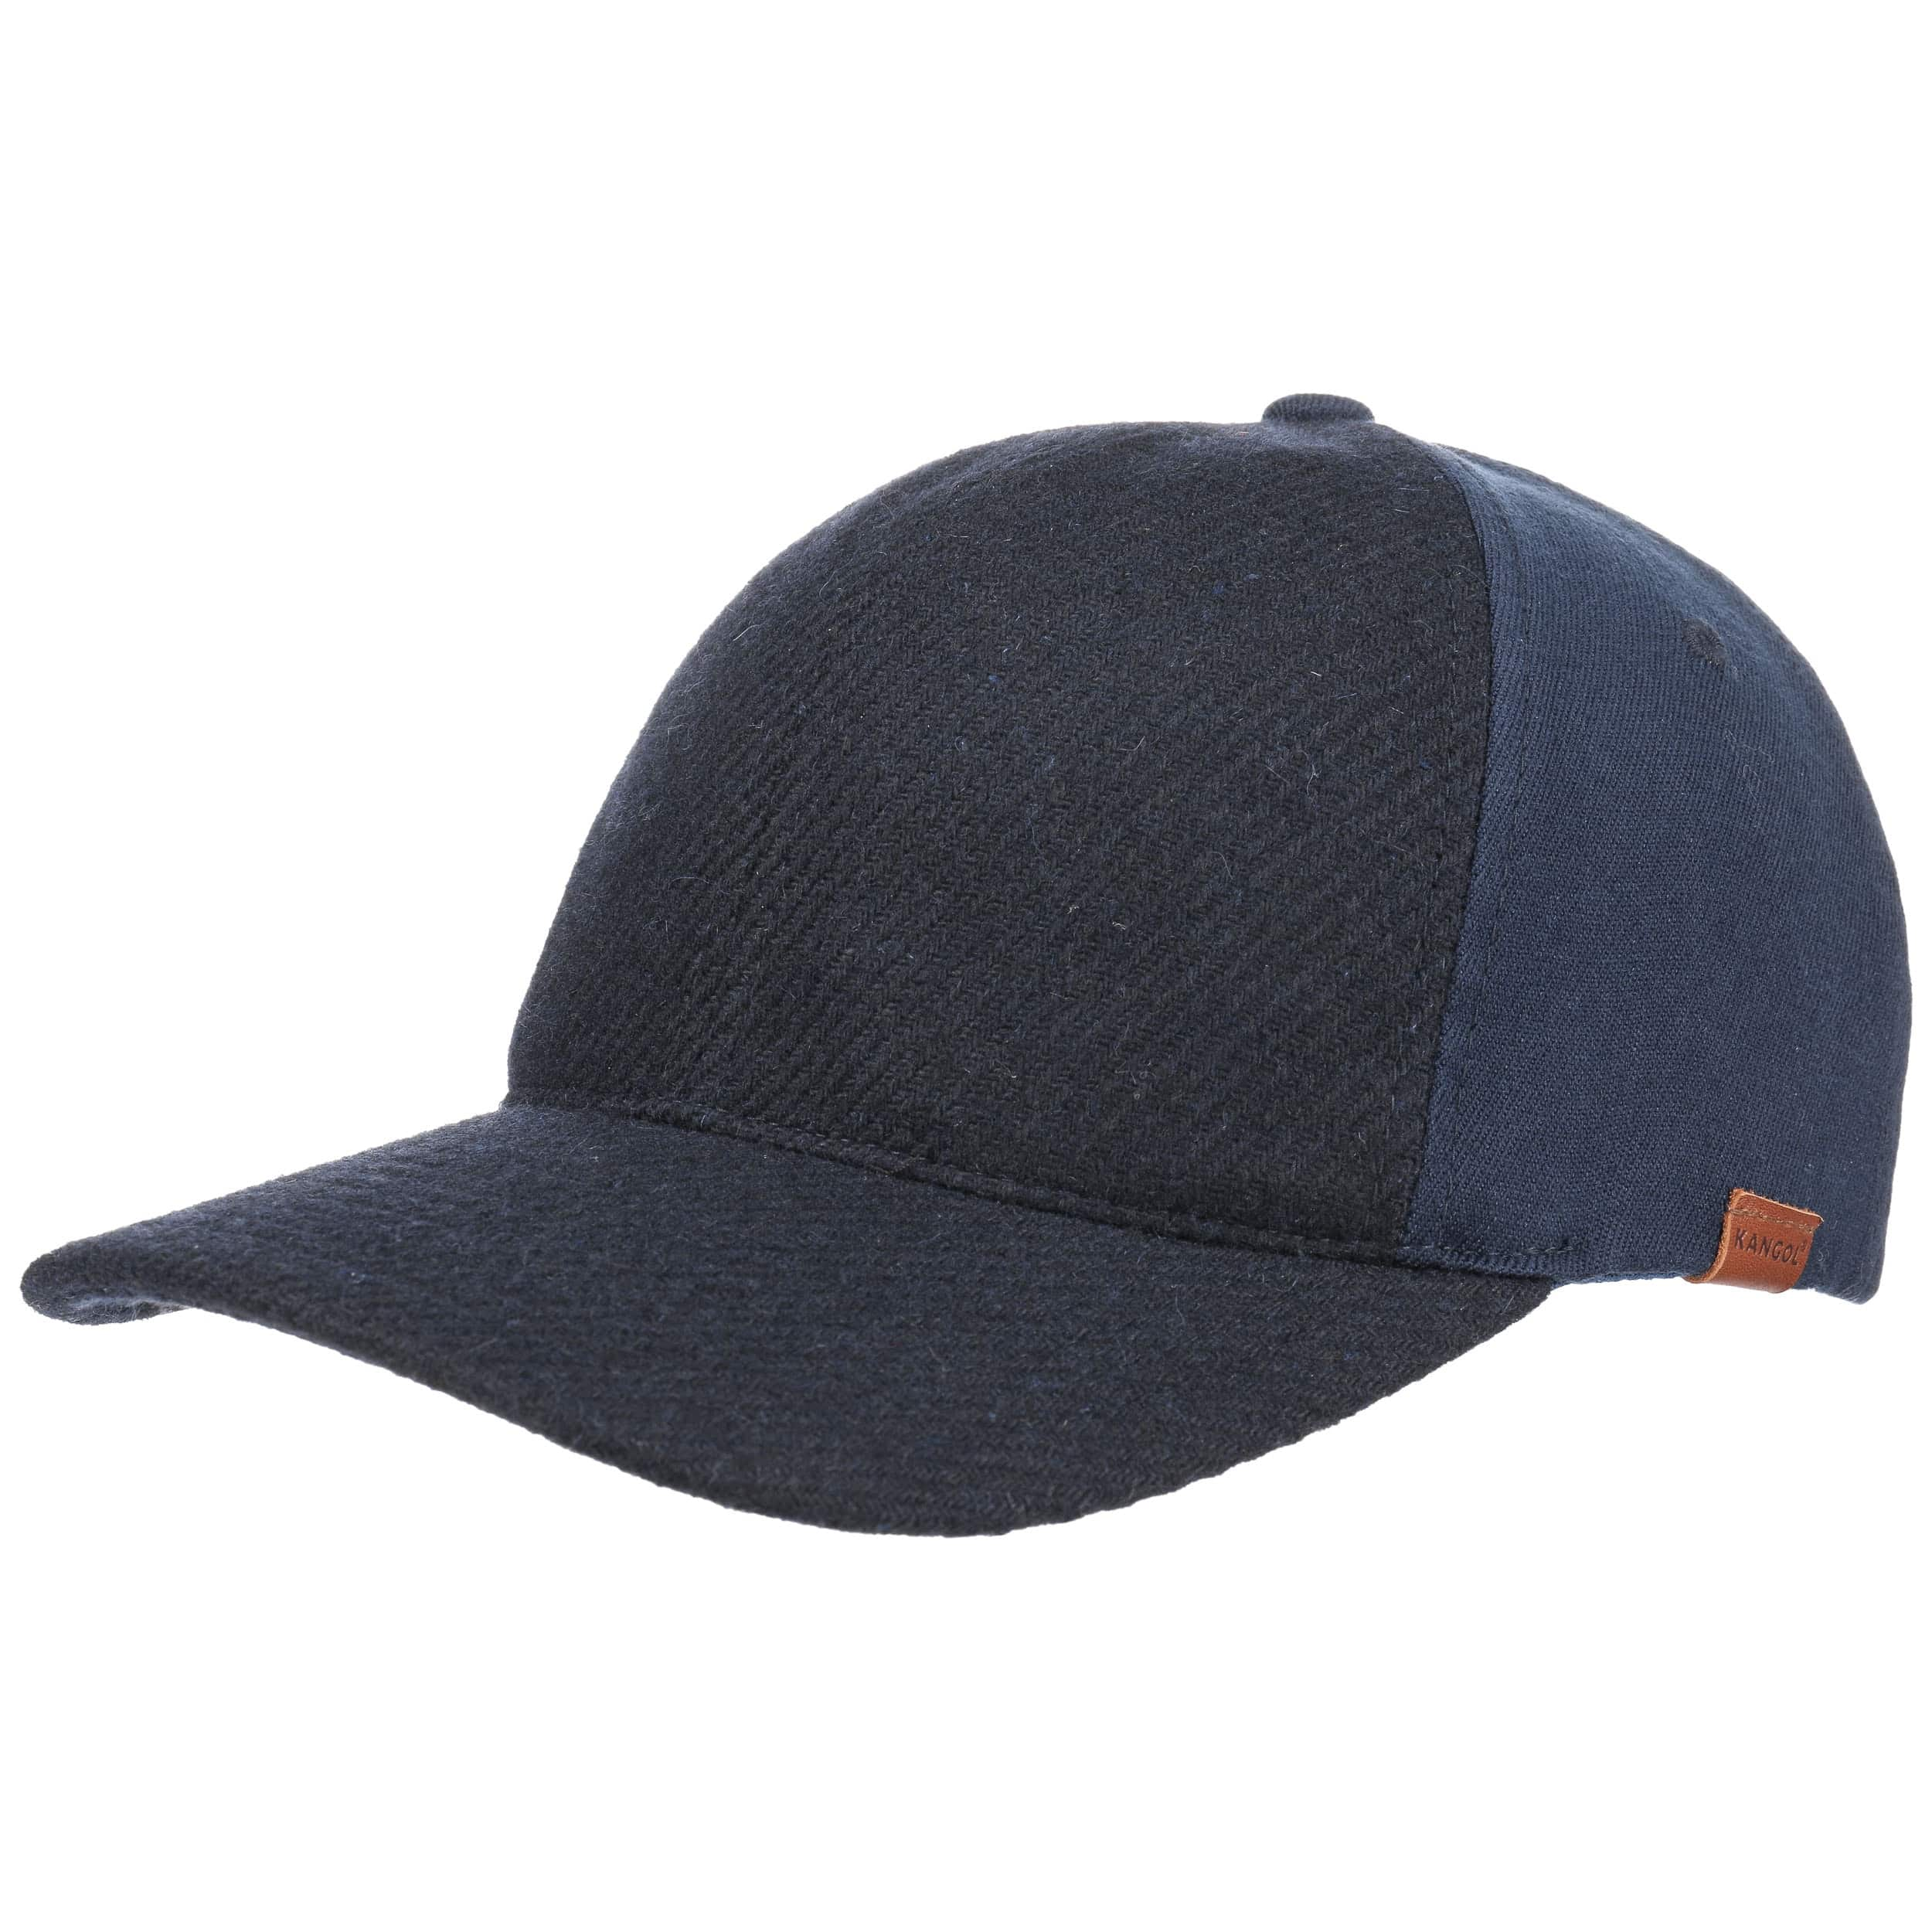 10560db631d ... Textured Wool Flexfit Cap by Kangol - blue 5 ...